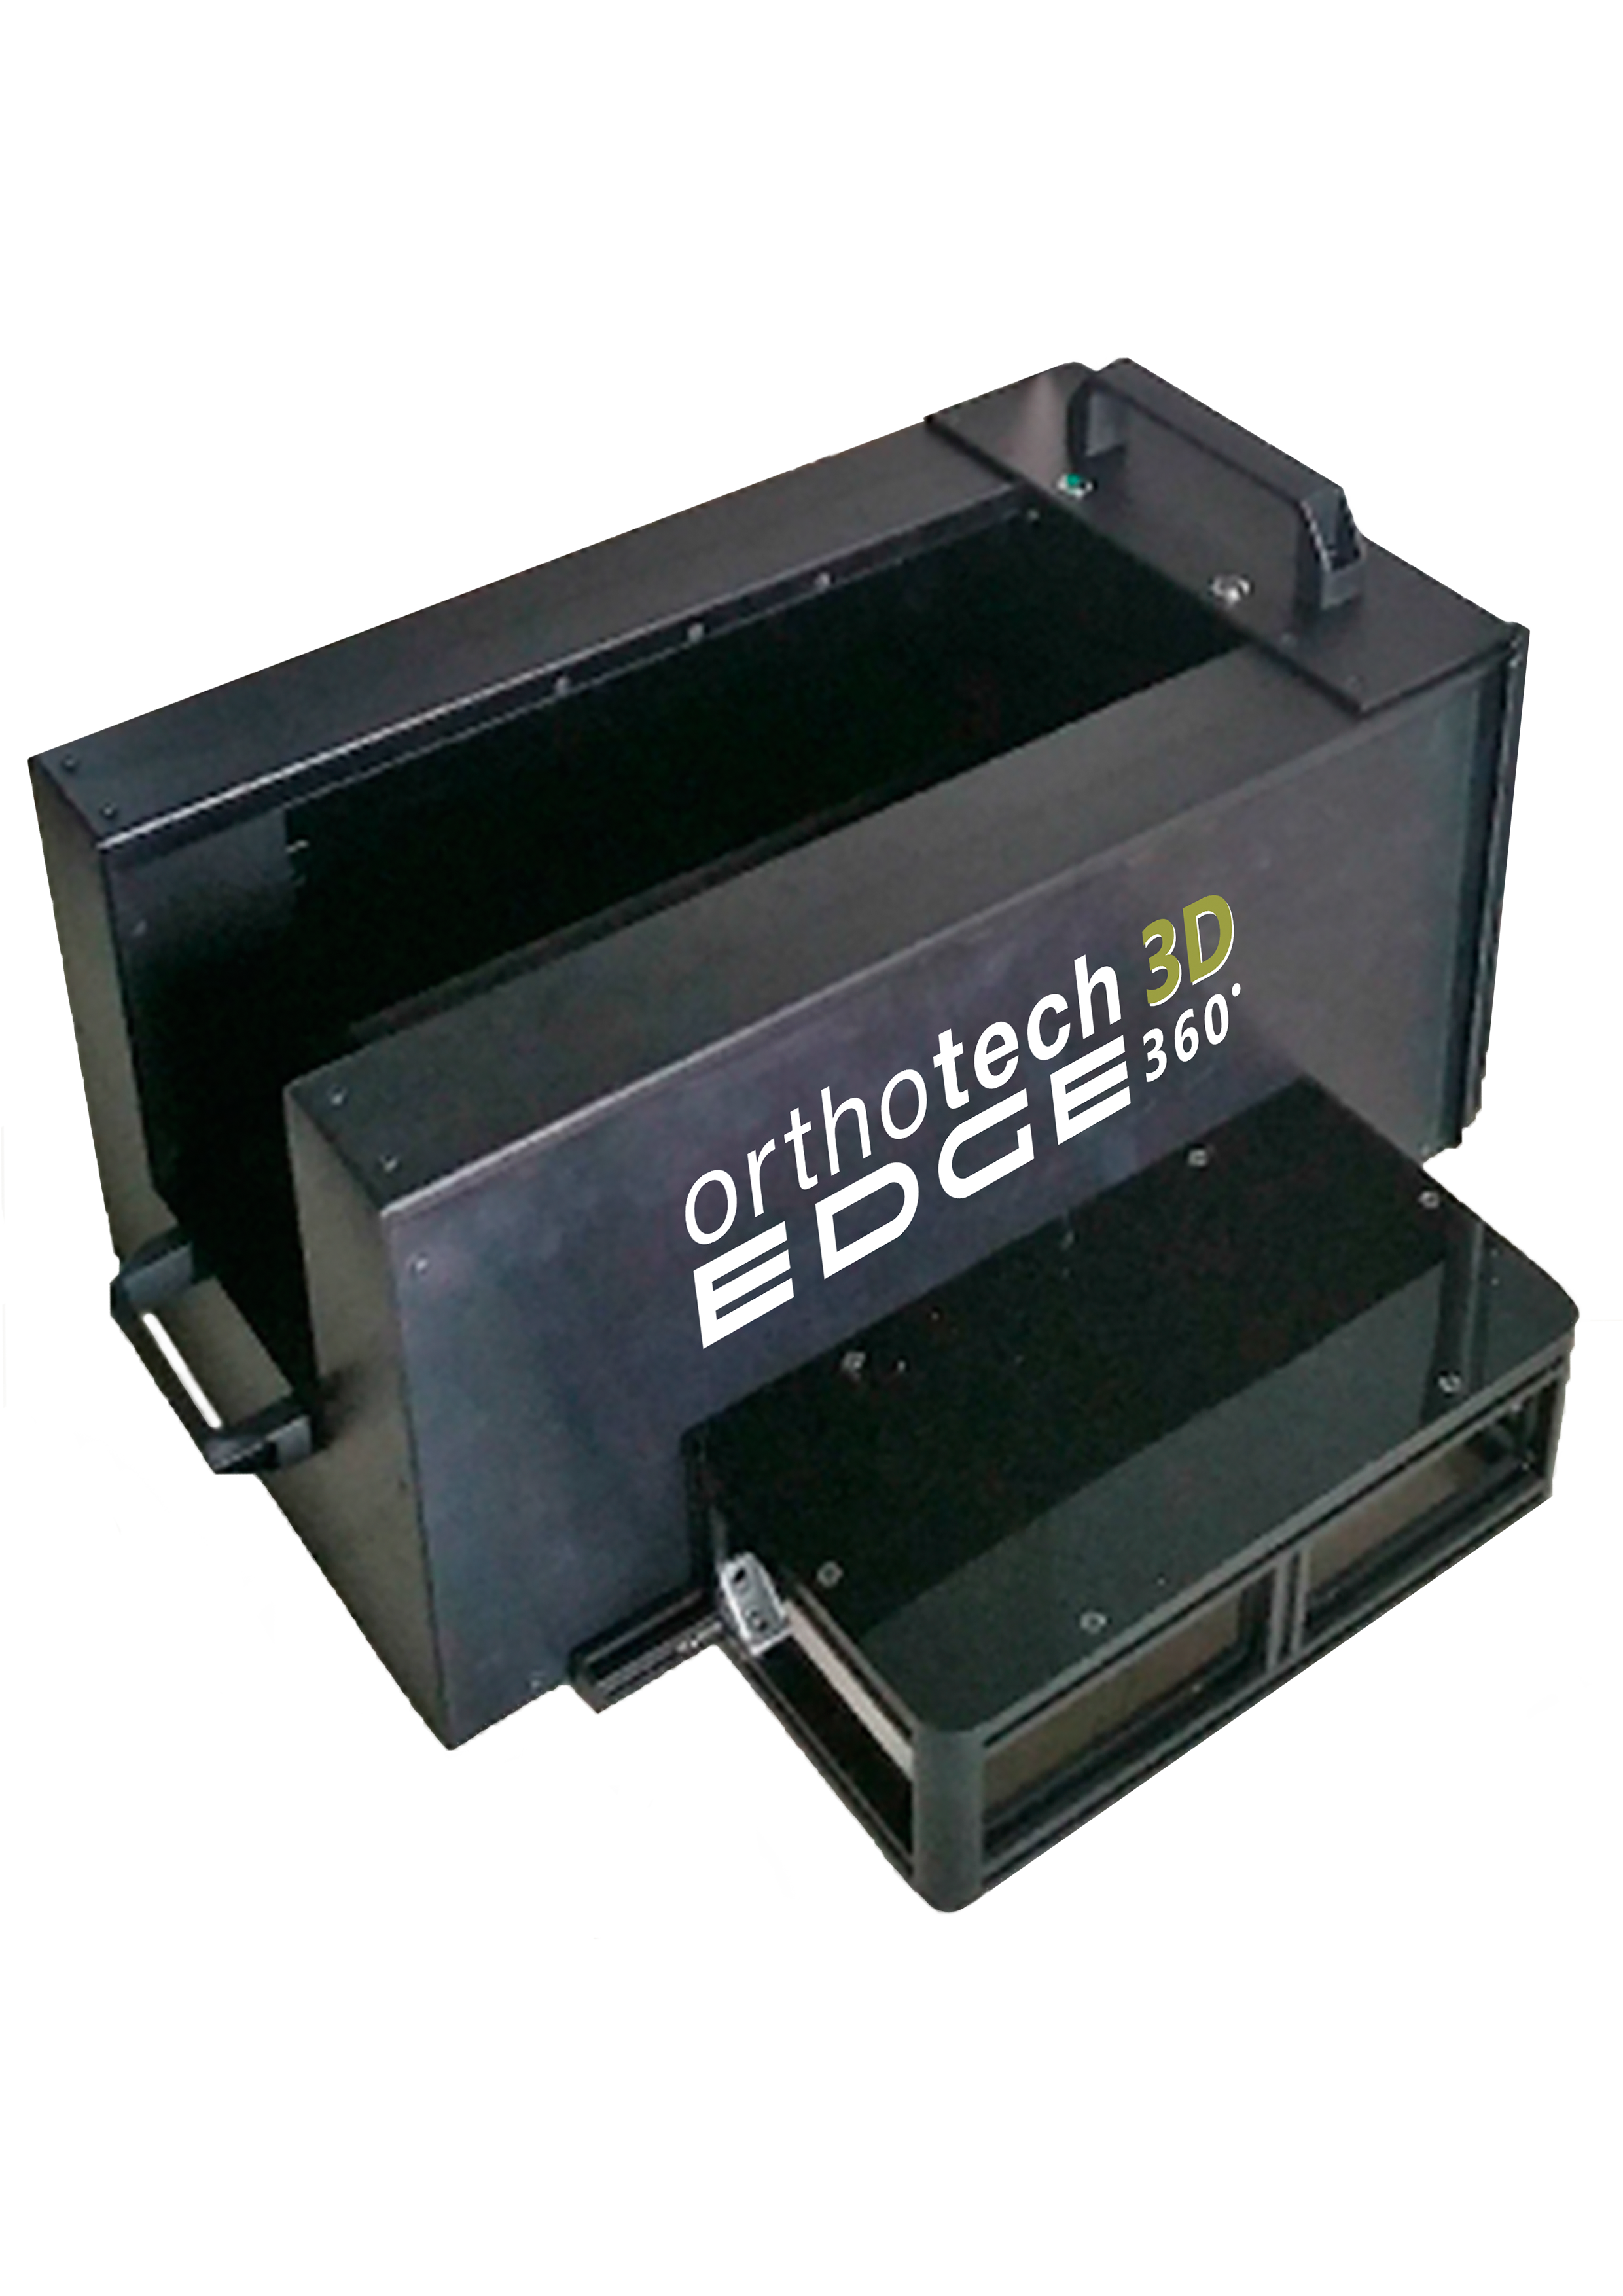 Orthotech 3D EDGE360